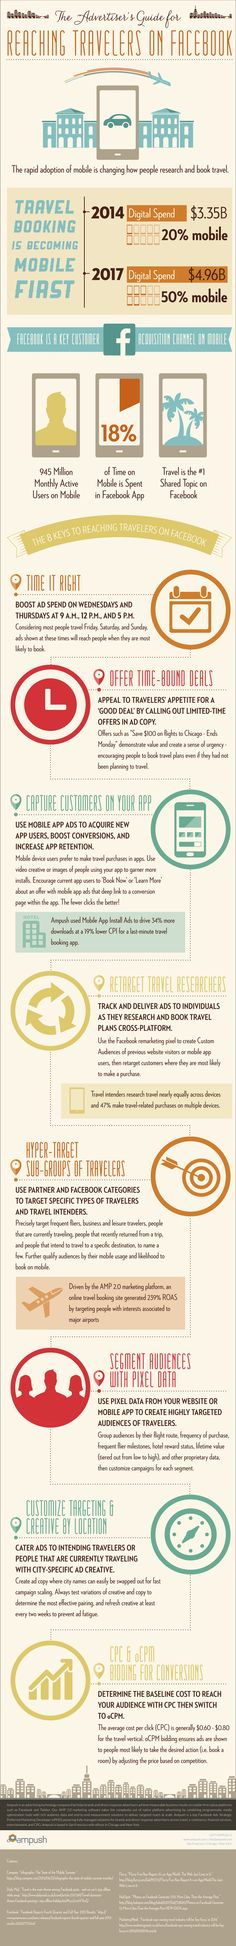 Infographic: How to reach travelers on Facebook